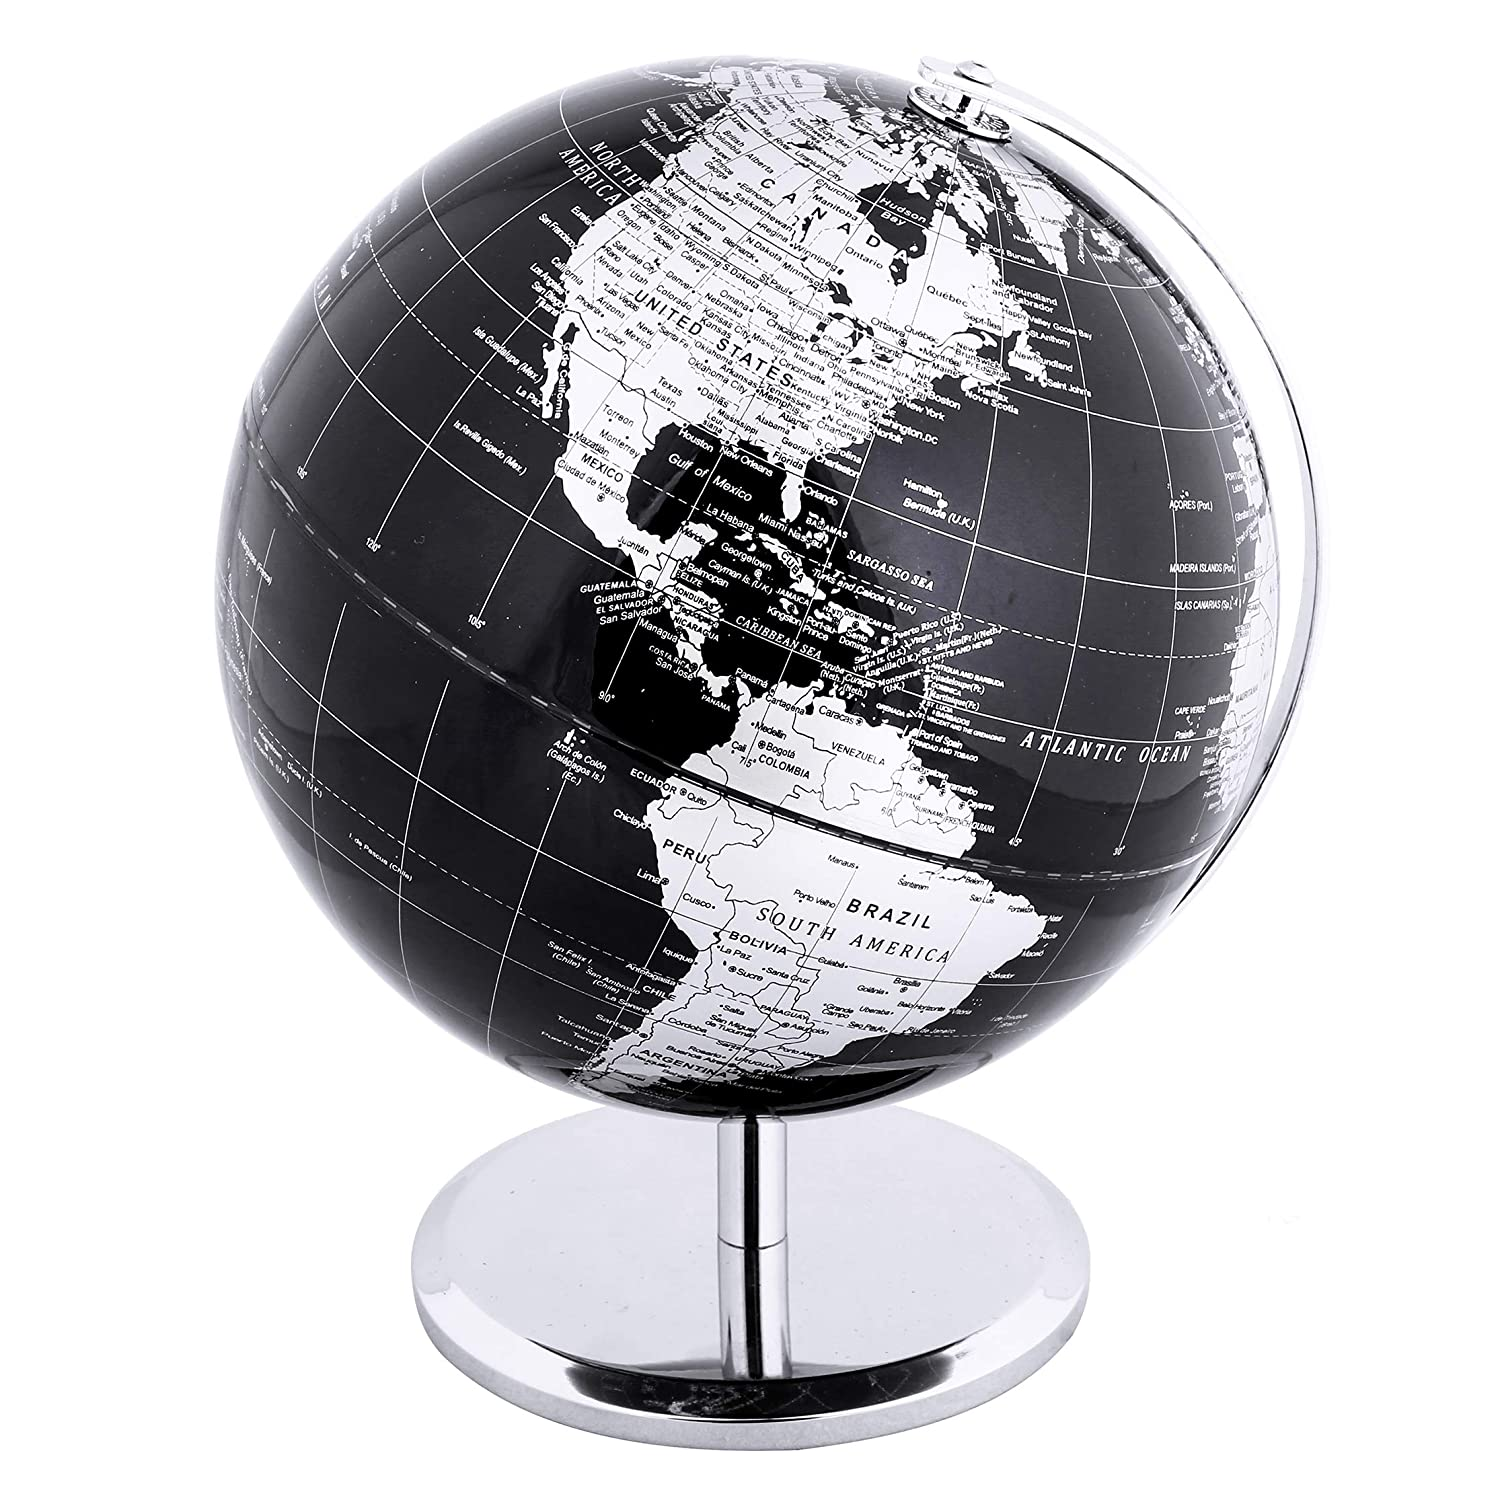 Exerz Metallic World Globe (Dia 8-Inch / 20cm) Black – Educational/Geographic/Modern Desktop Decoration - Stainless Steel Arc and Base/Earth World - Metallic Black - for School, Home, and Office